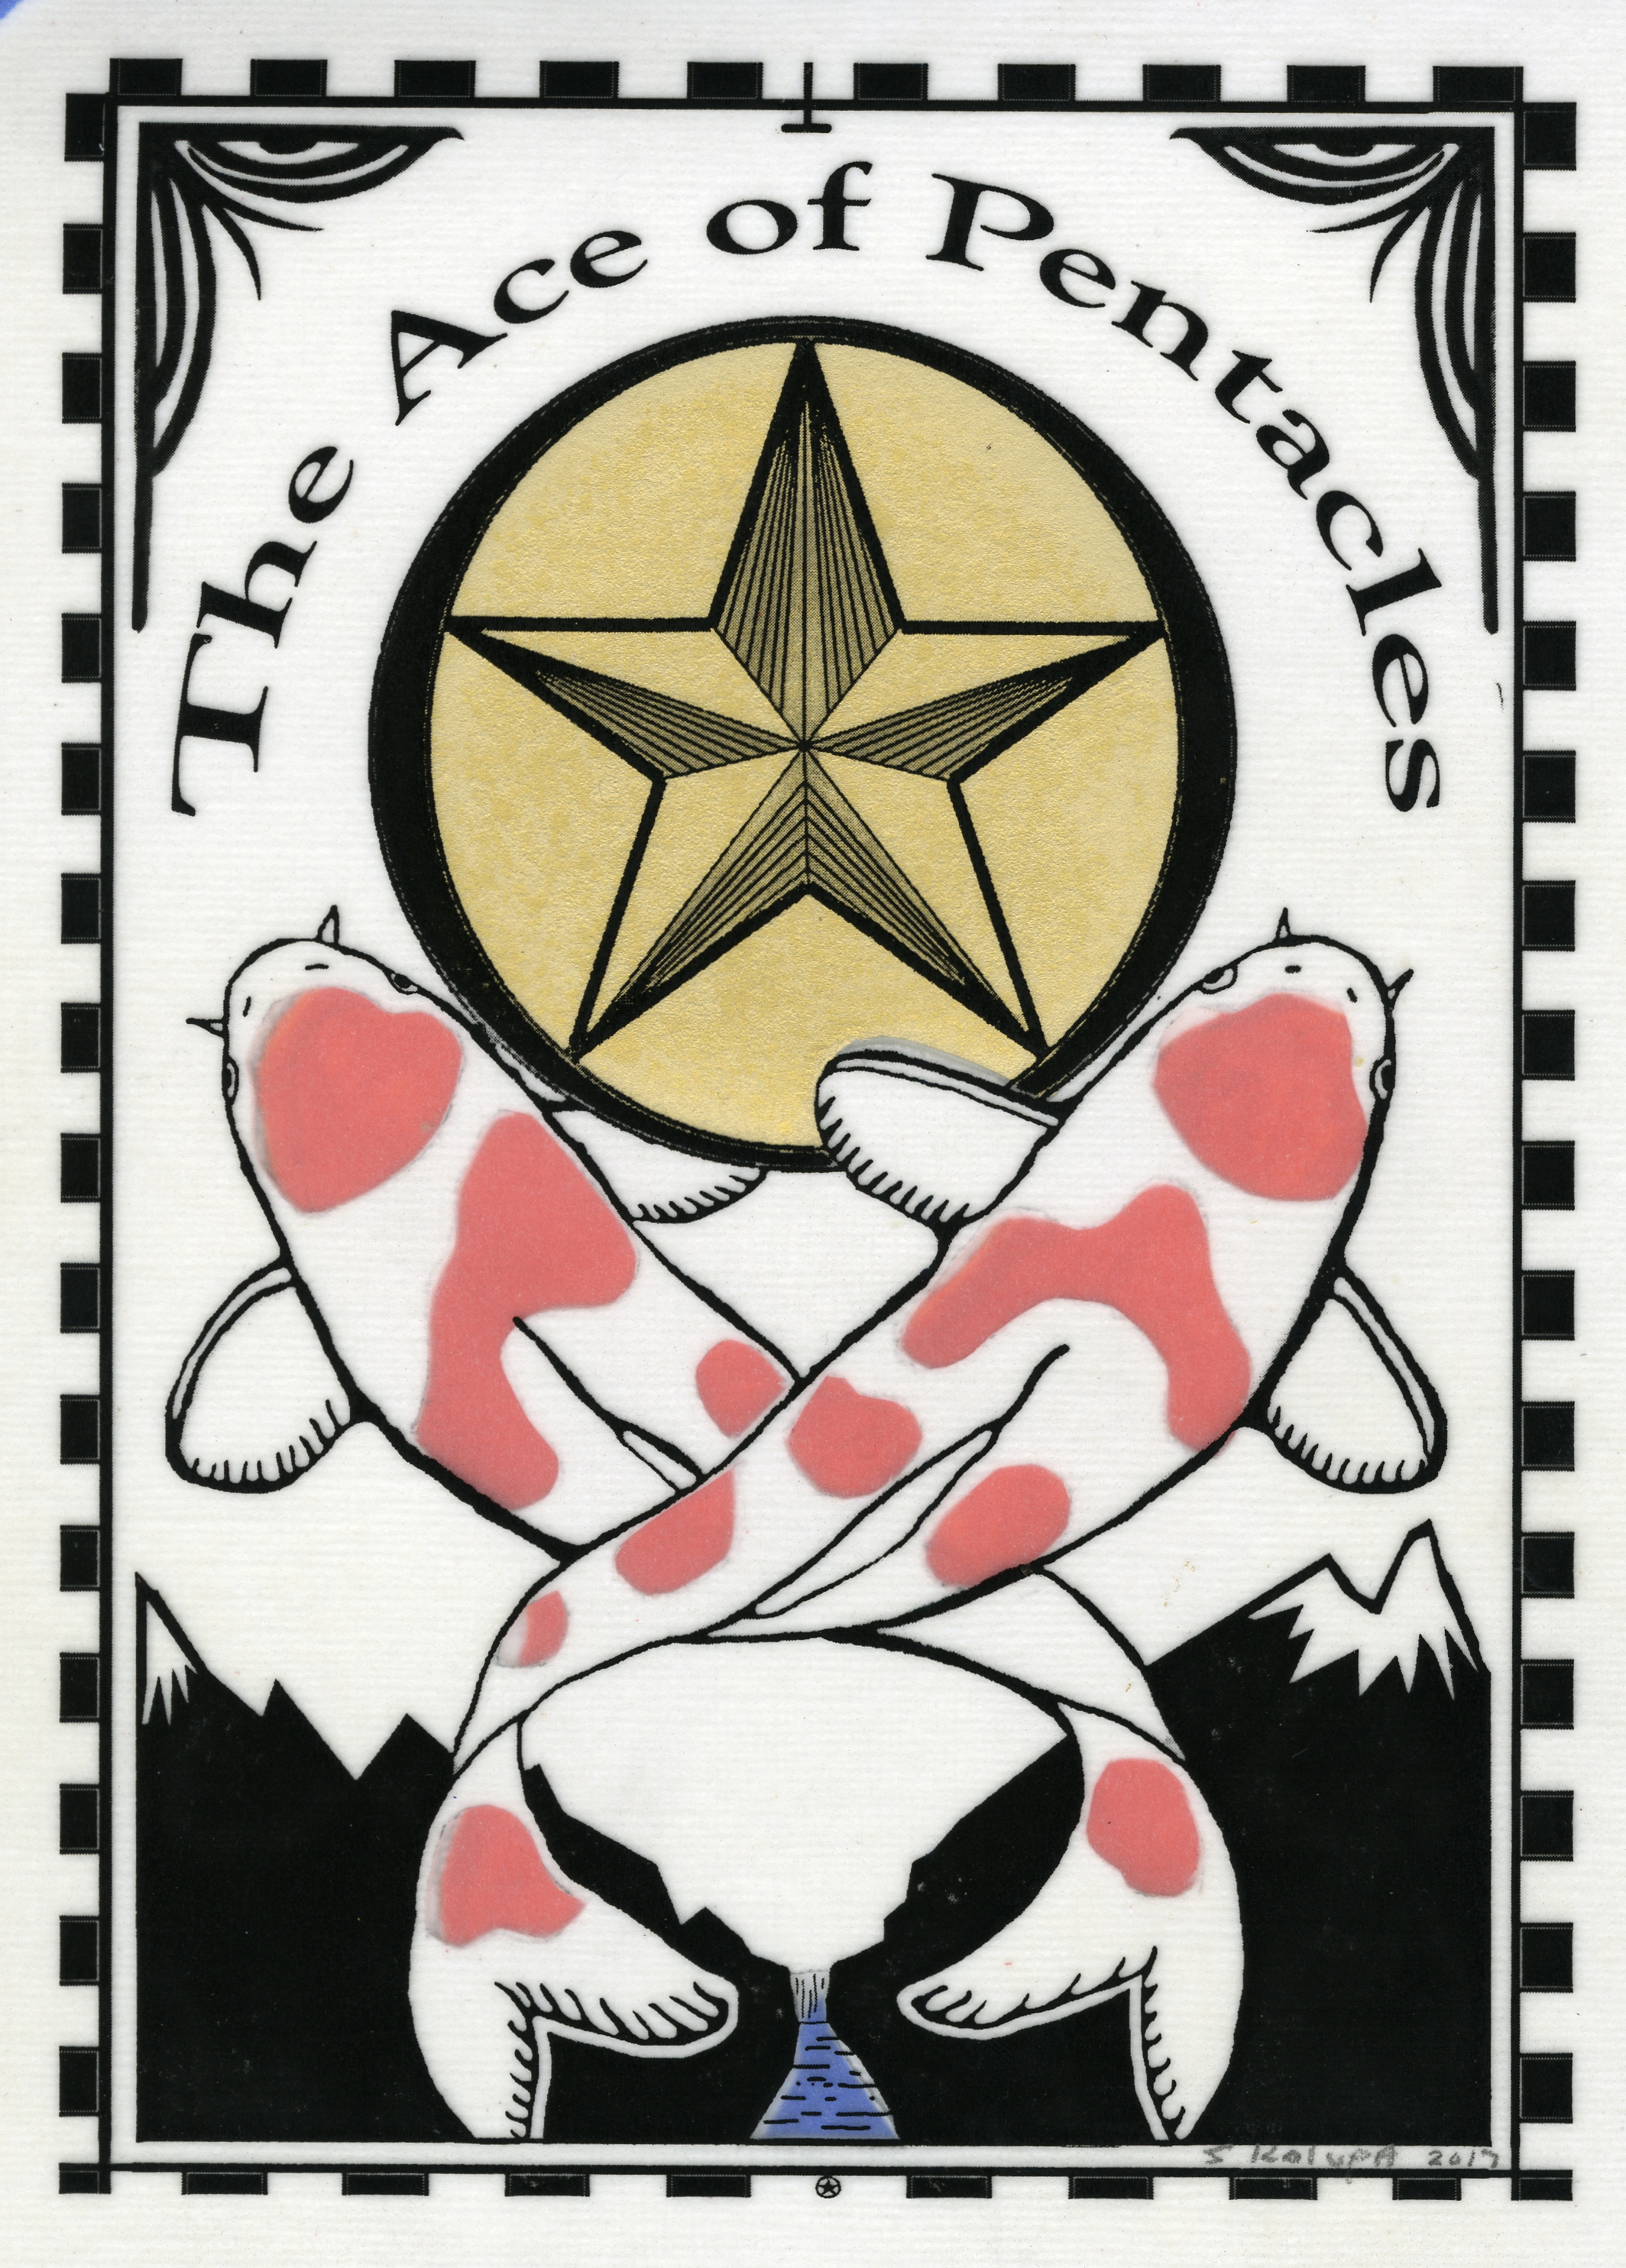 Jim Kalupa - Ace of Pentacles